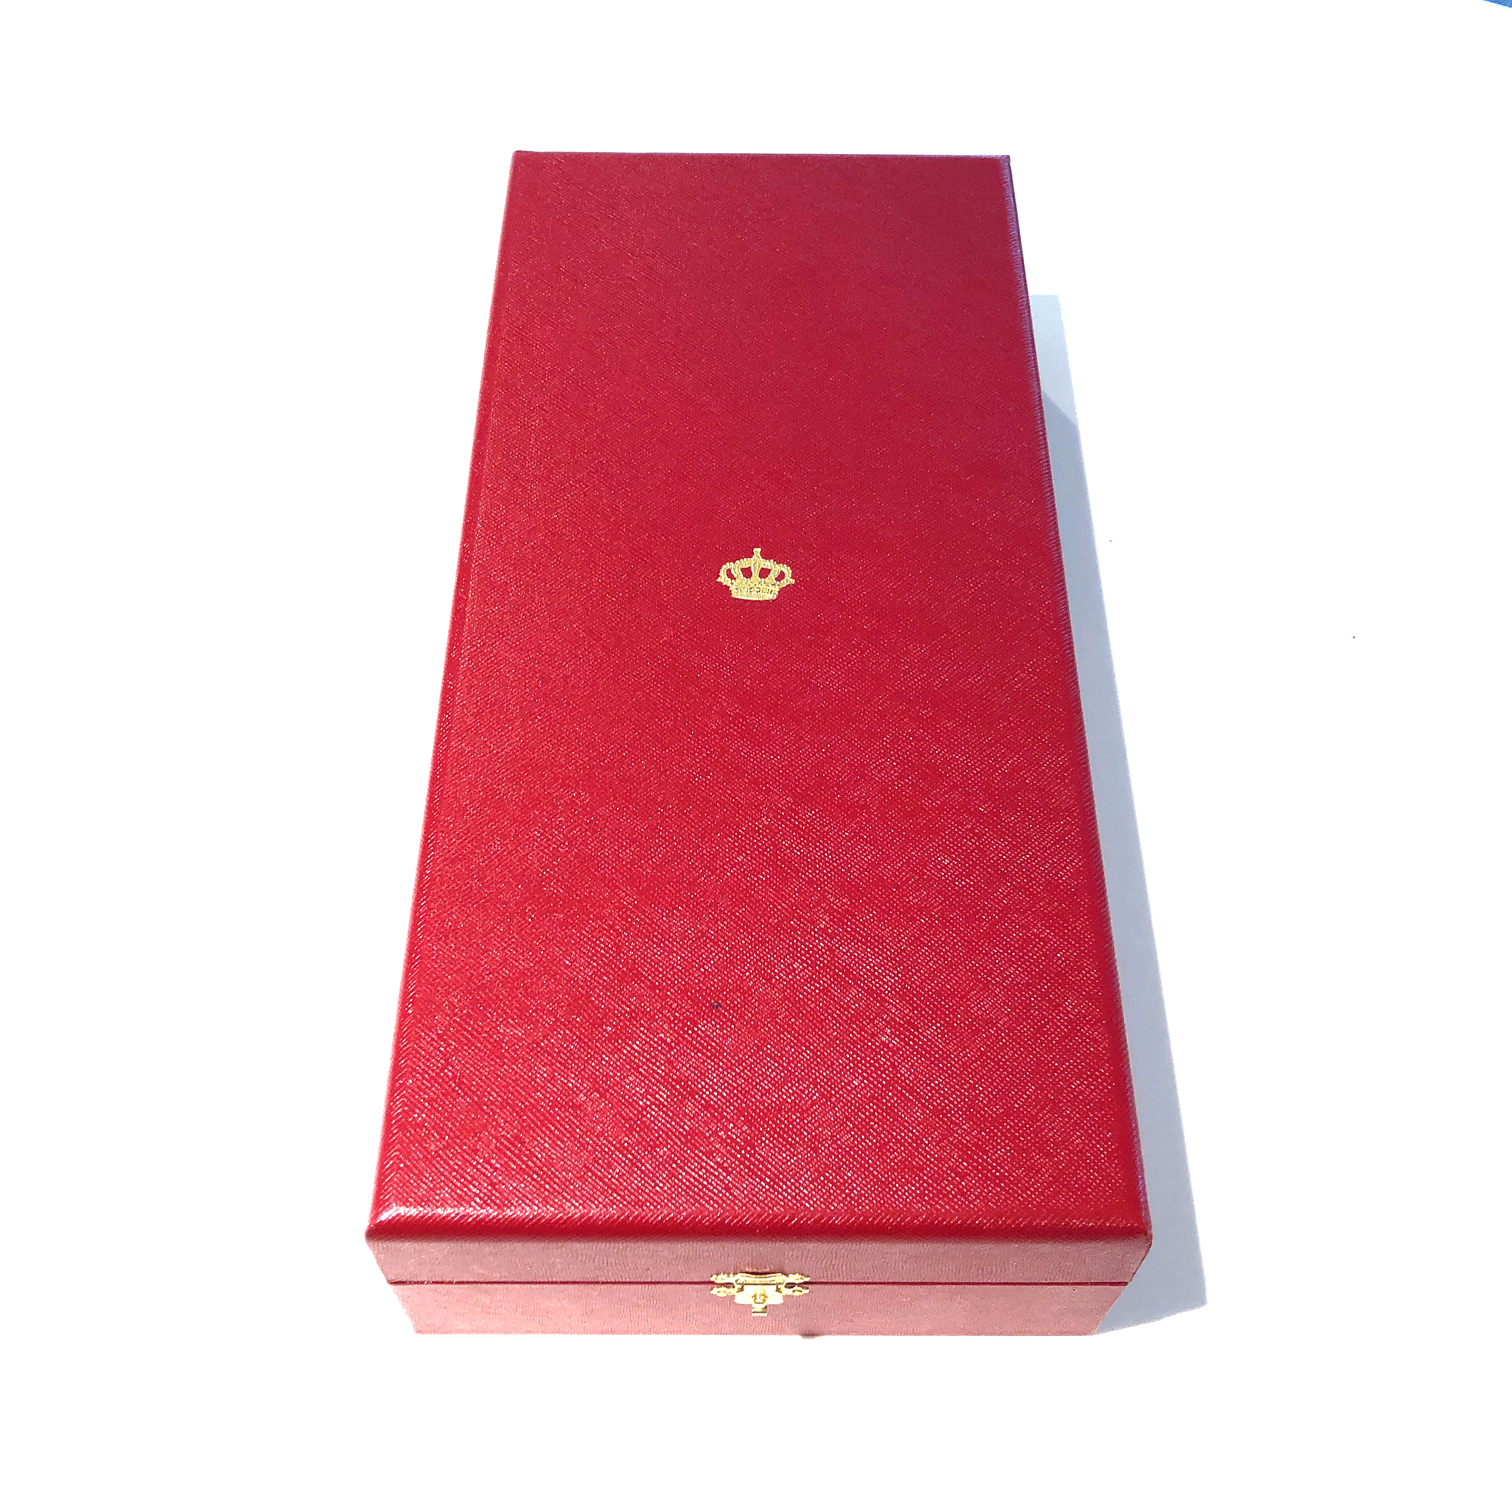 Luxury box for Grand Cross in the Order of the Crown